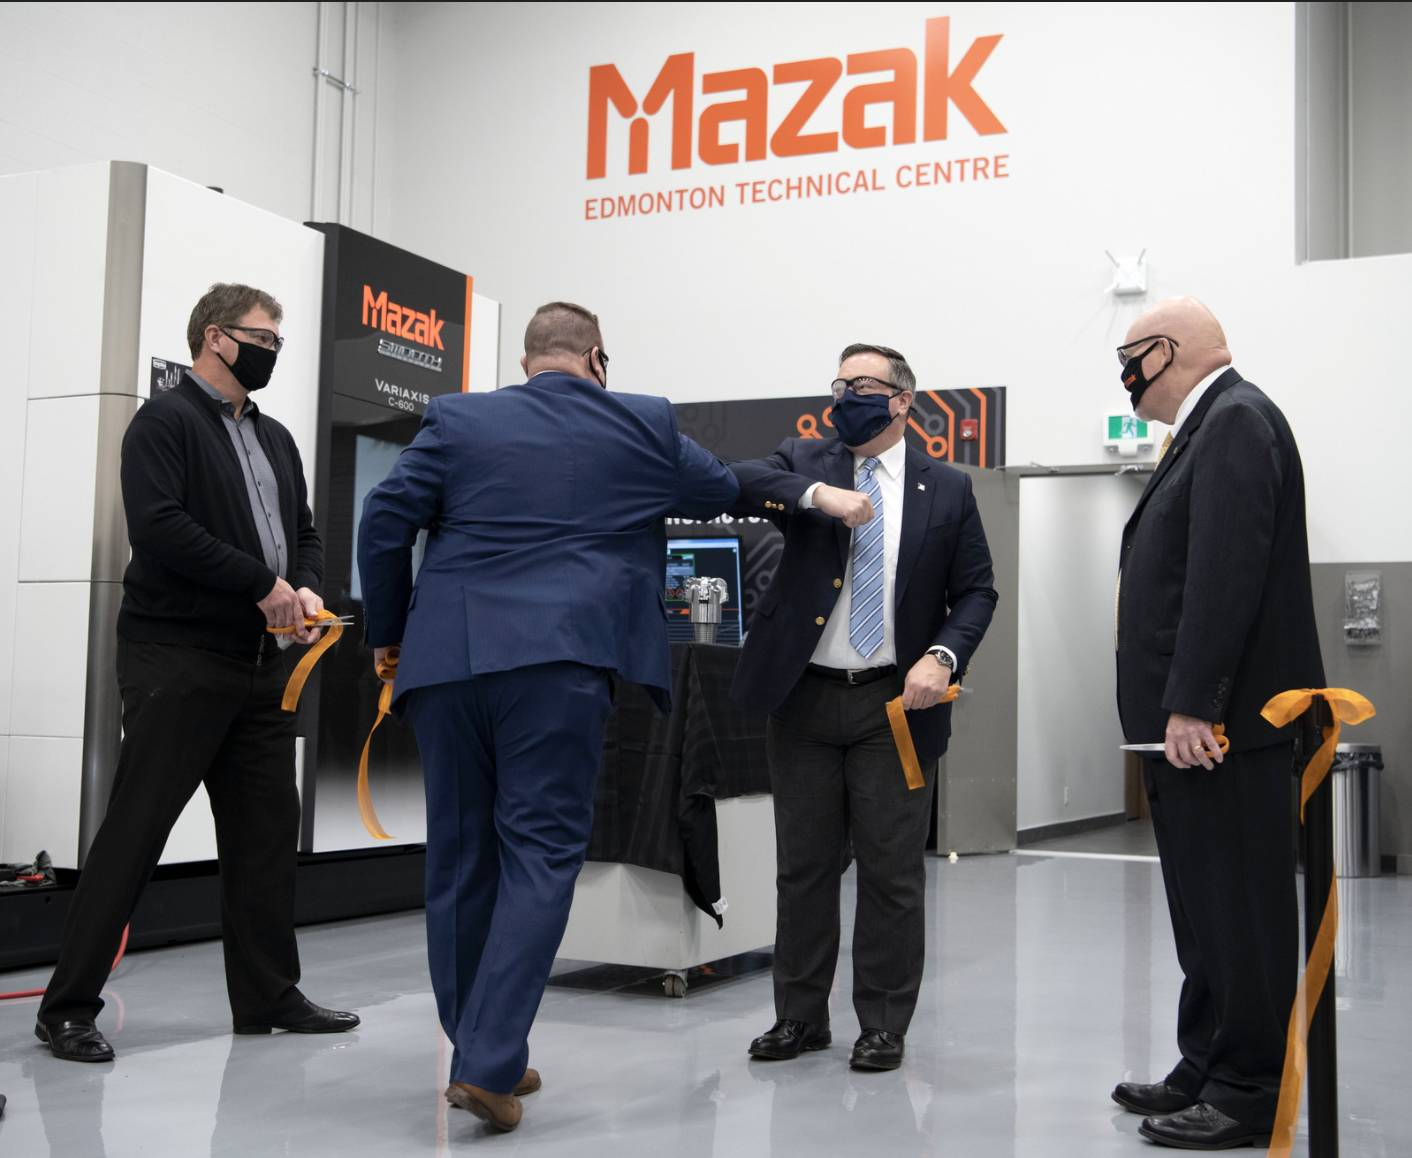 It was elbow-bumps all around as Alberta Premier Jason Kenney joined Ray Buxton at the grand opening of Mazak's Edmonton Technical Centre. PHOTO: Chris Schwarz/Government of Alberta